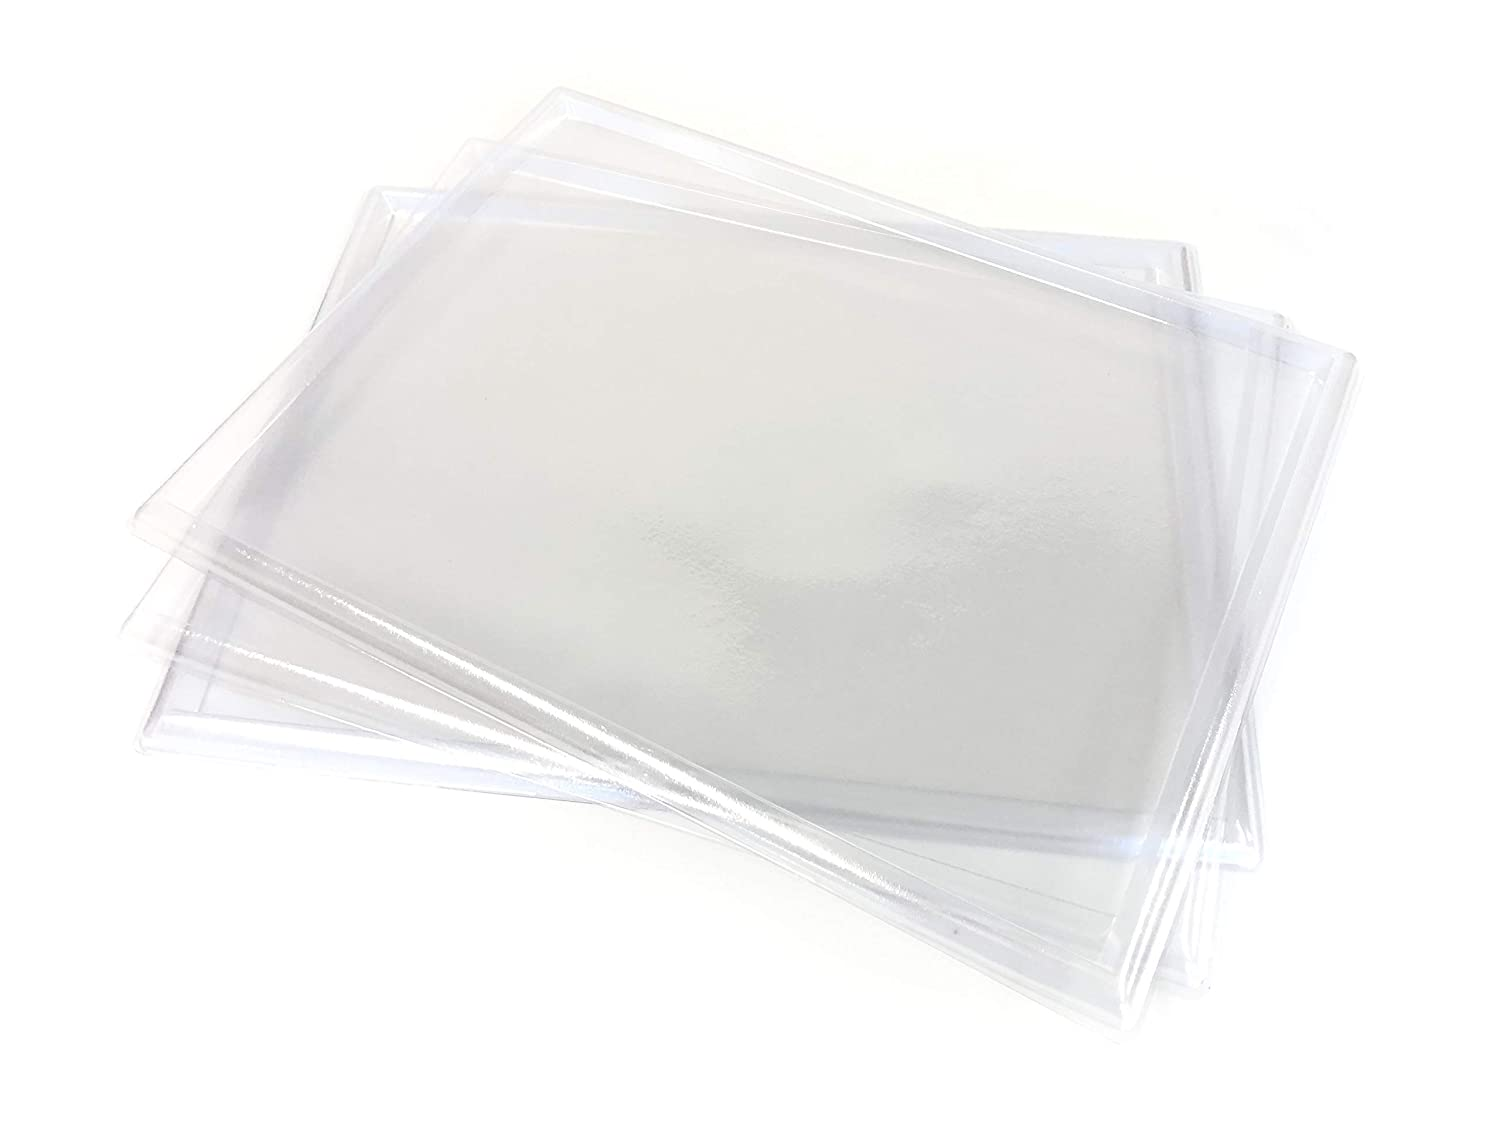 Clark Scientific Clear Colourless PVC Contaminant Spill Tray Liners Large 700 x 450mm